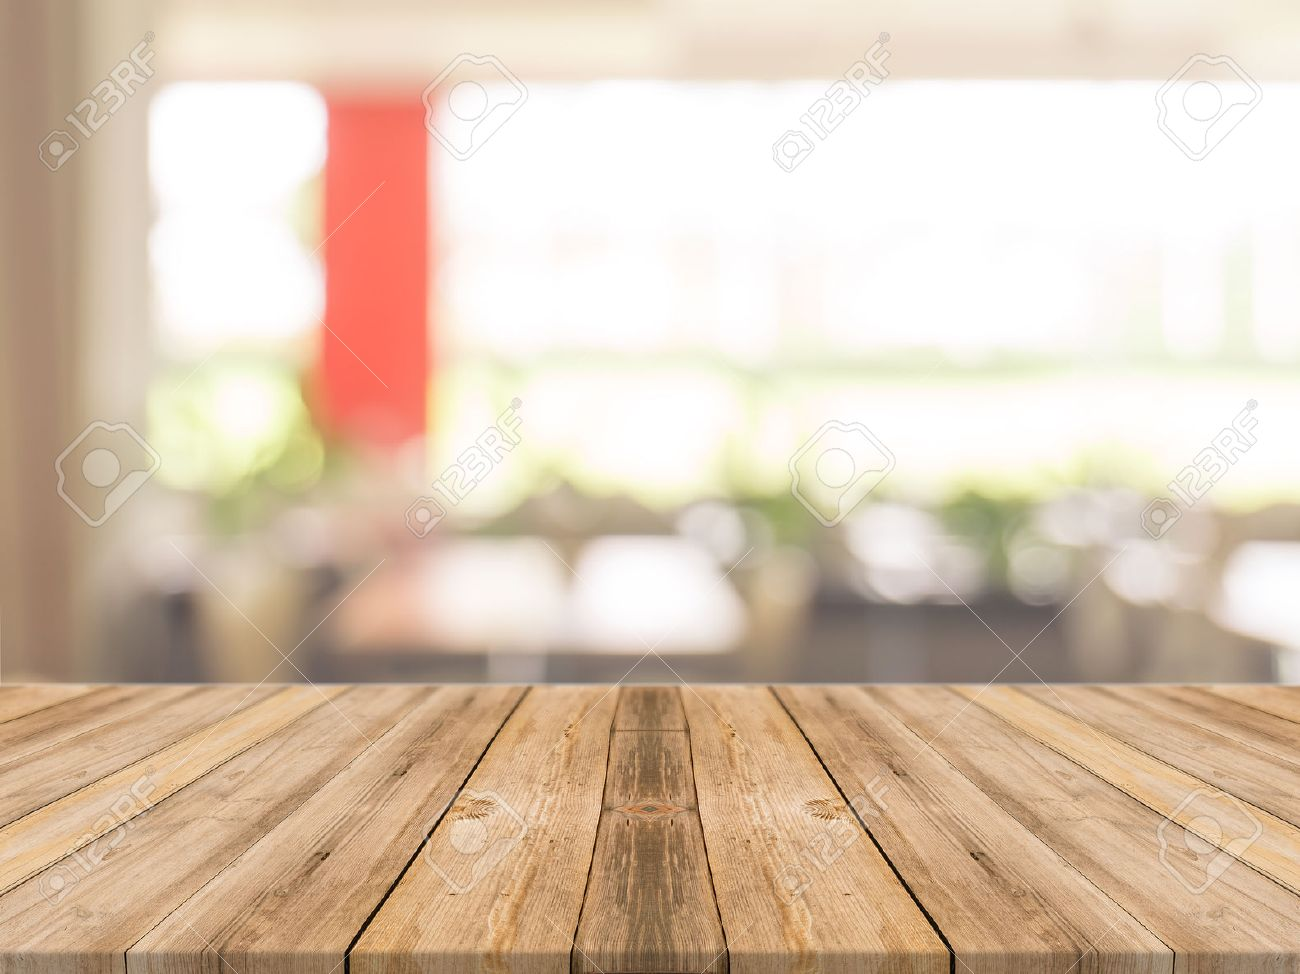 Background image table - Table Background Wooden Board Empty Table In Front Of Blurred Background Perspective Brown Wood